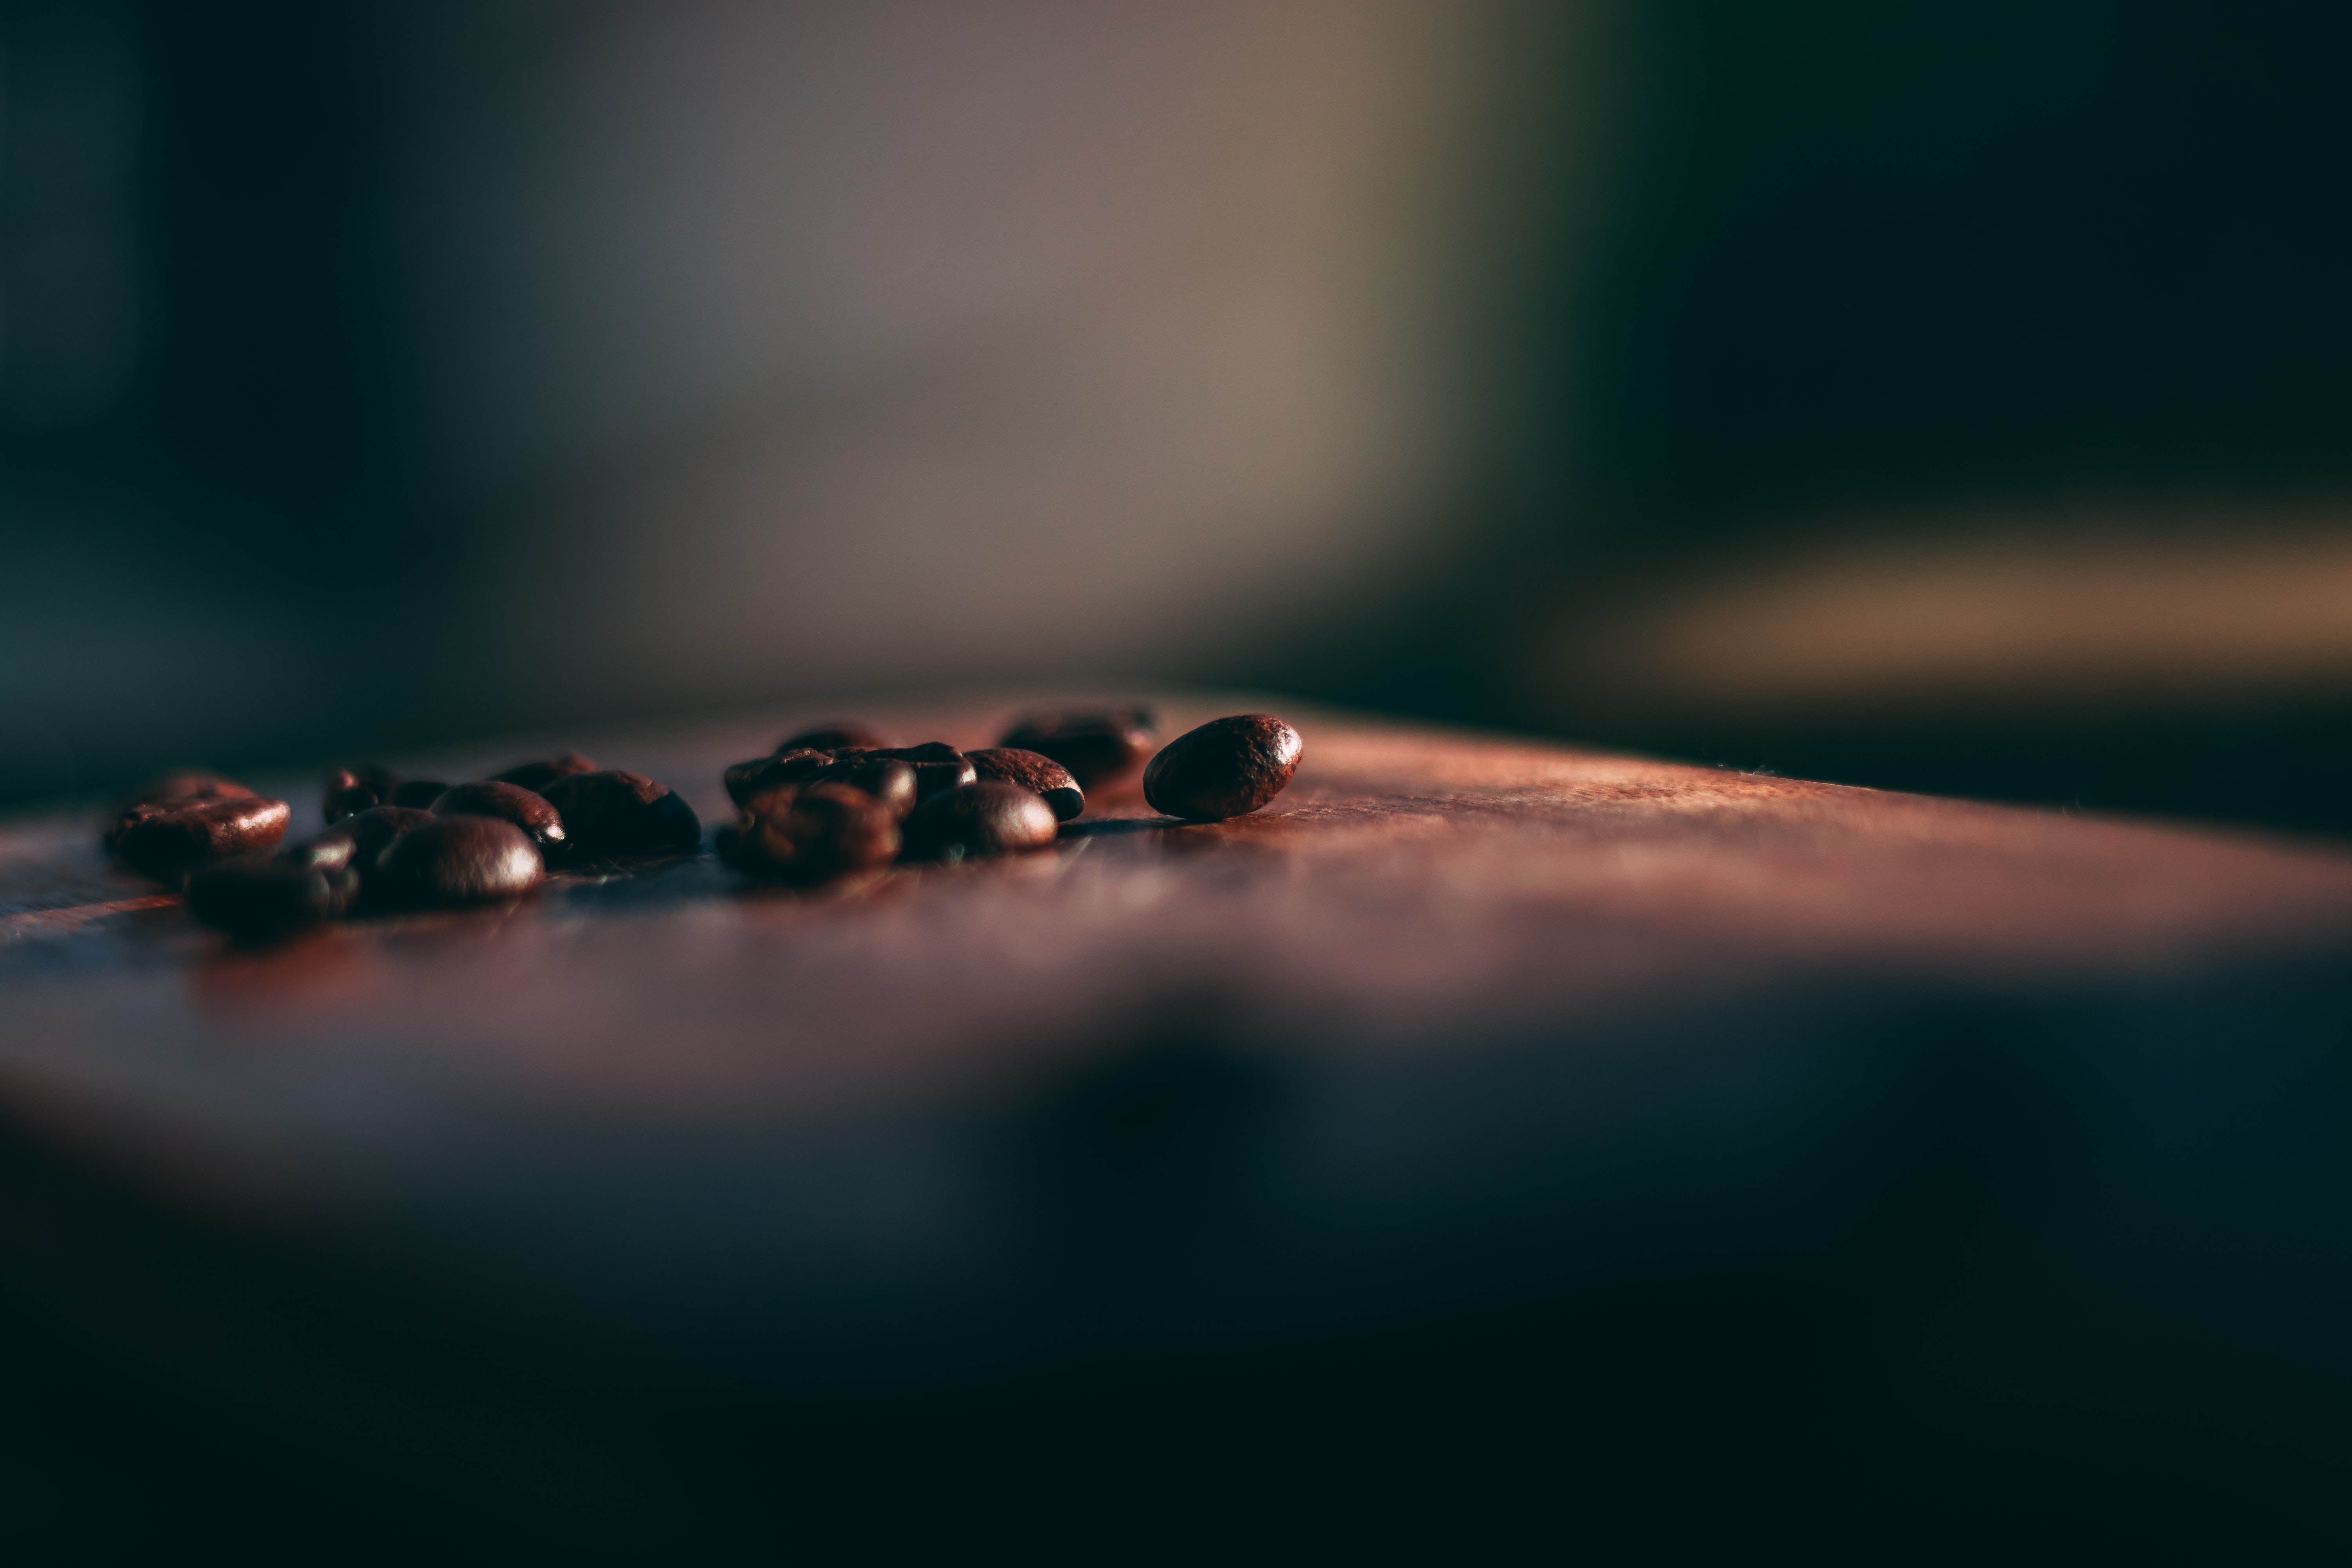 selective focus photo of coffee beans